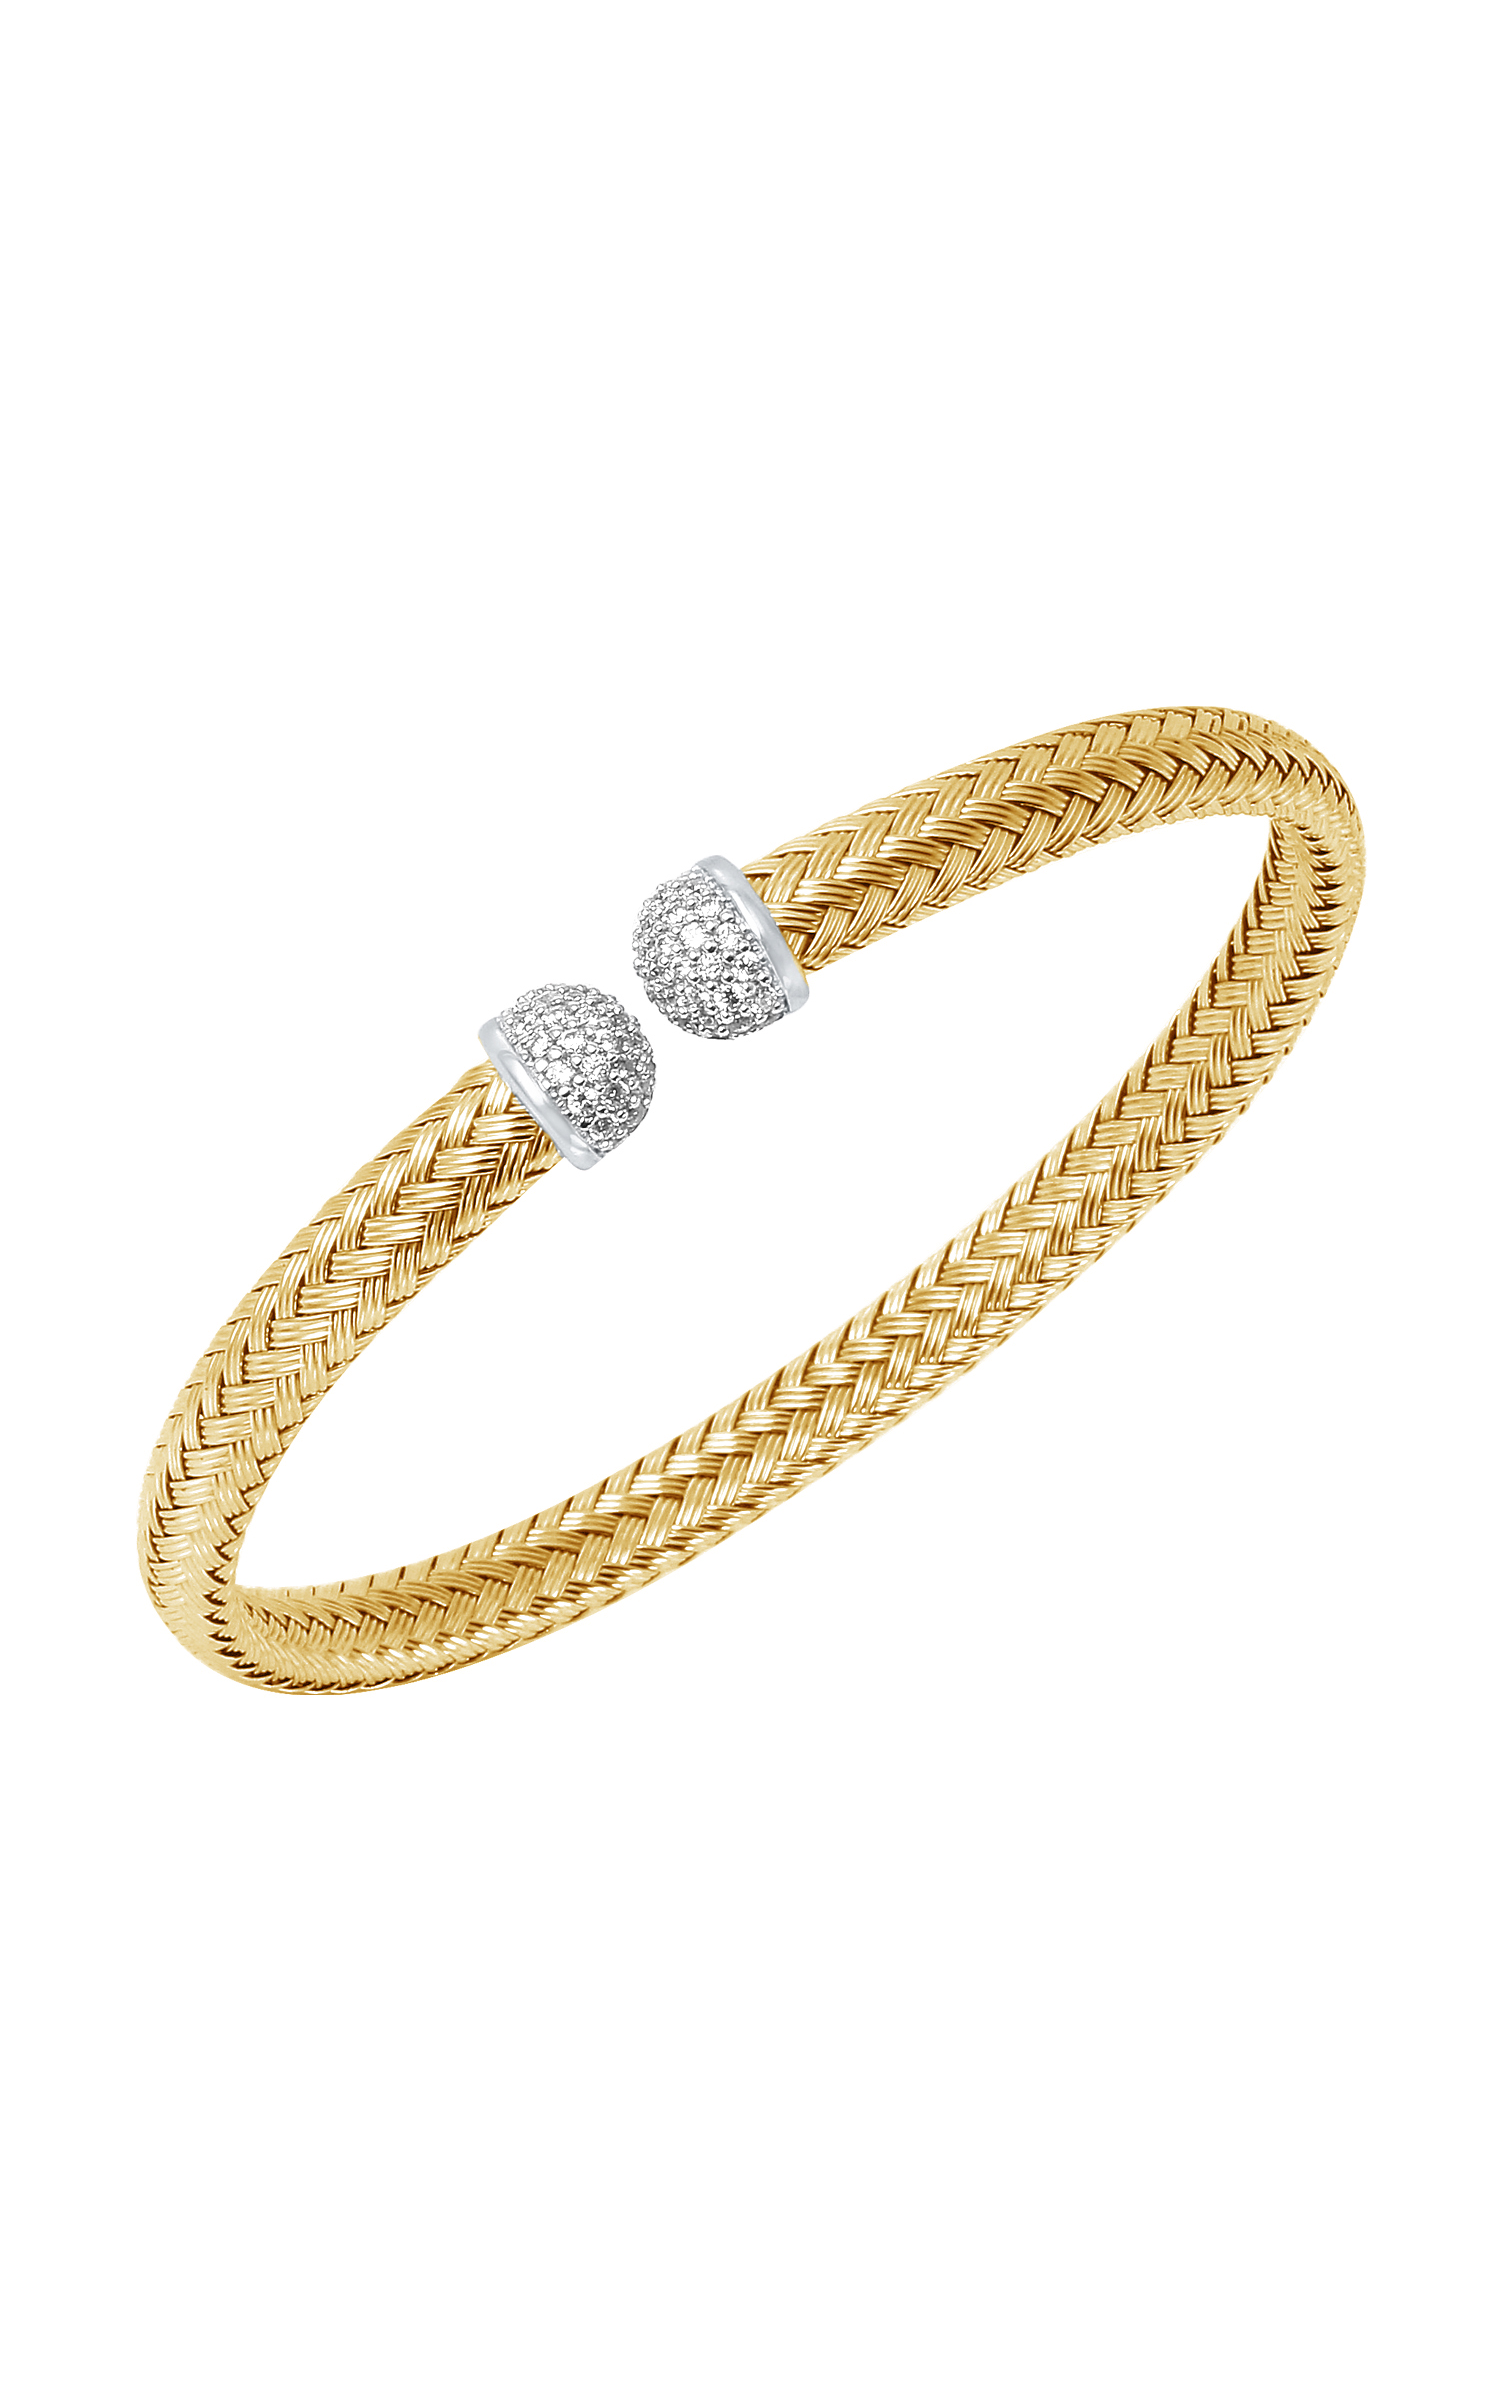 Charles Garnier Bracelets Bracelet Paolo Collection MLC8192YWZ product image